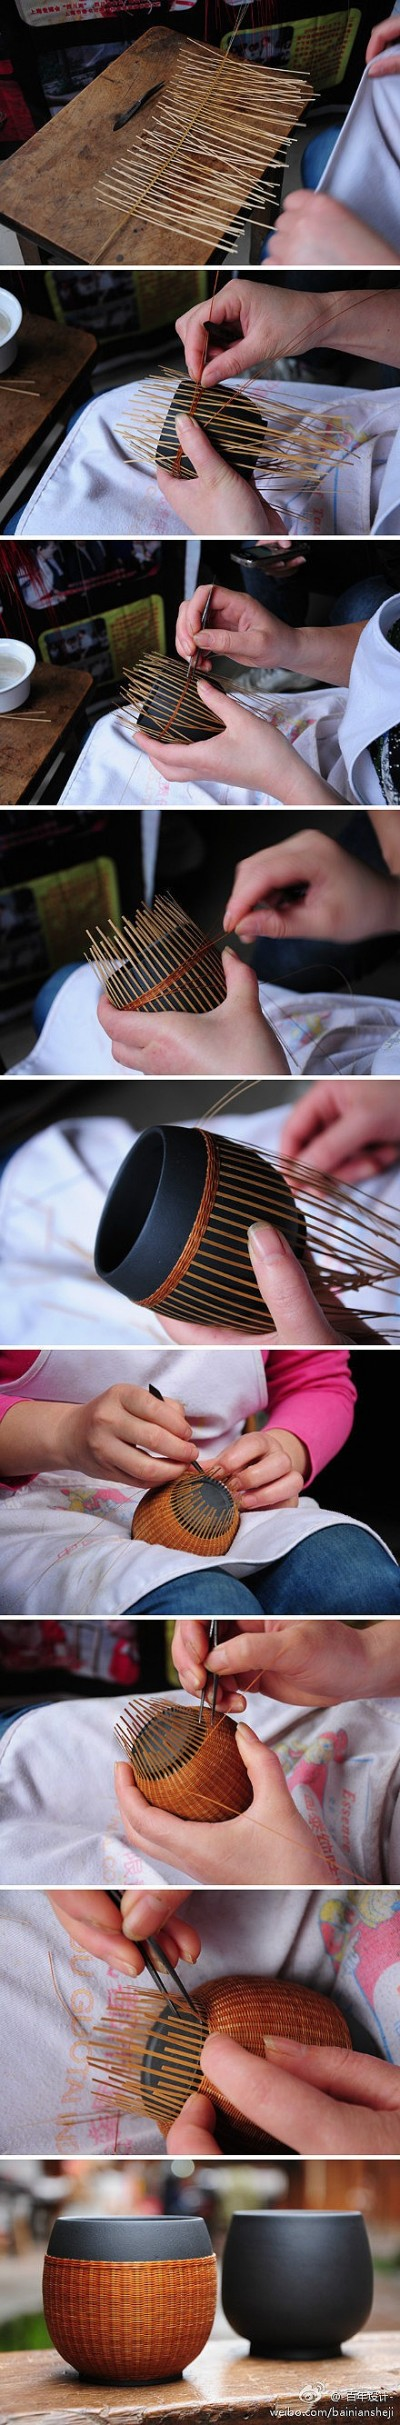 How to make bamboo tea cup cover step by step DIY tutorial picture instructions